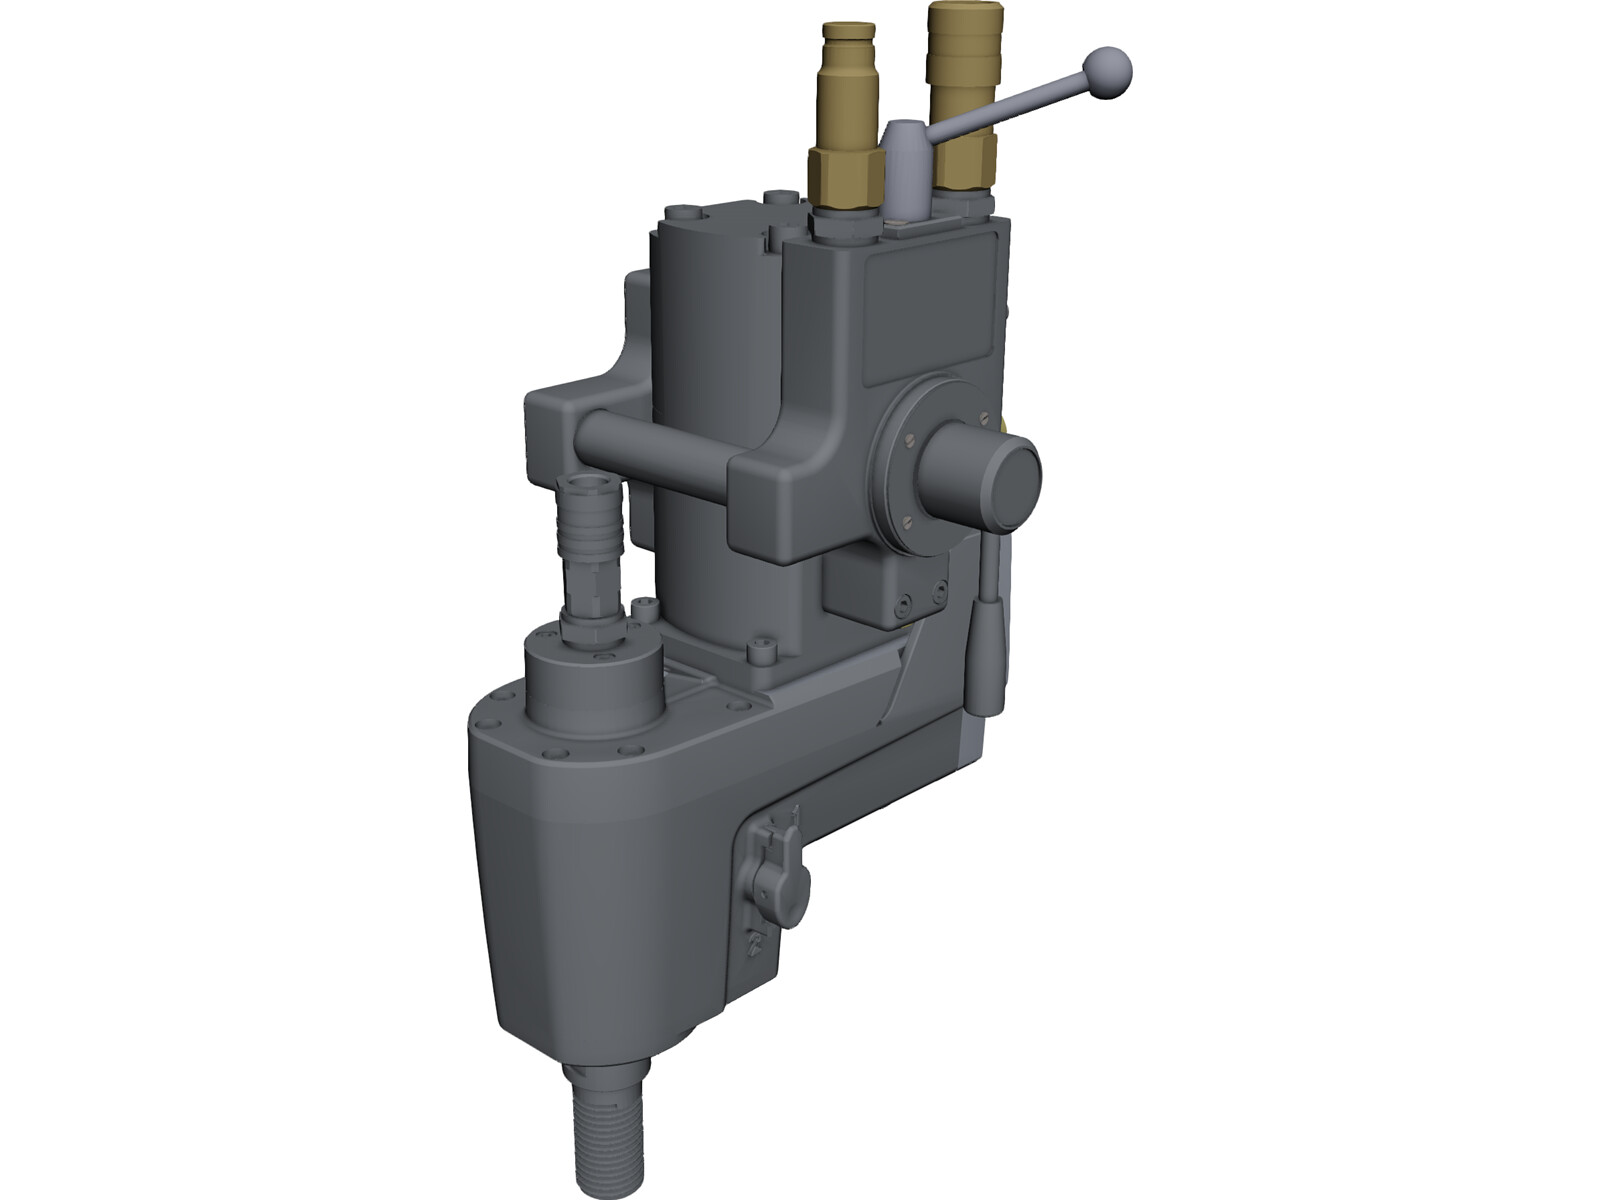 Husqvarna Drillmotor DM406 3D CAD Model